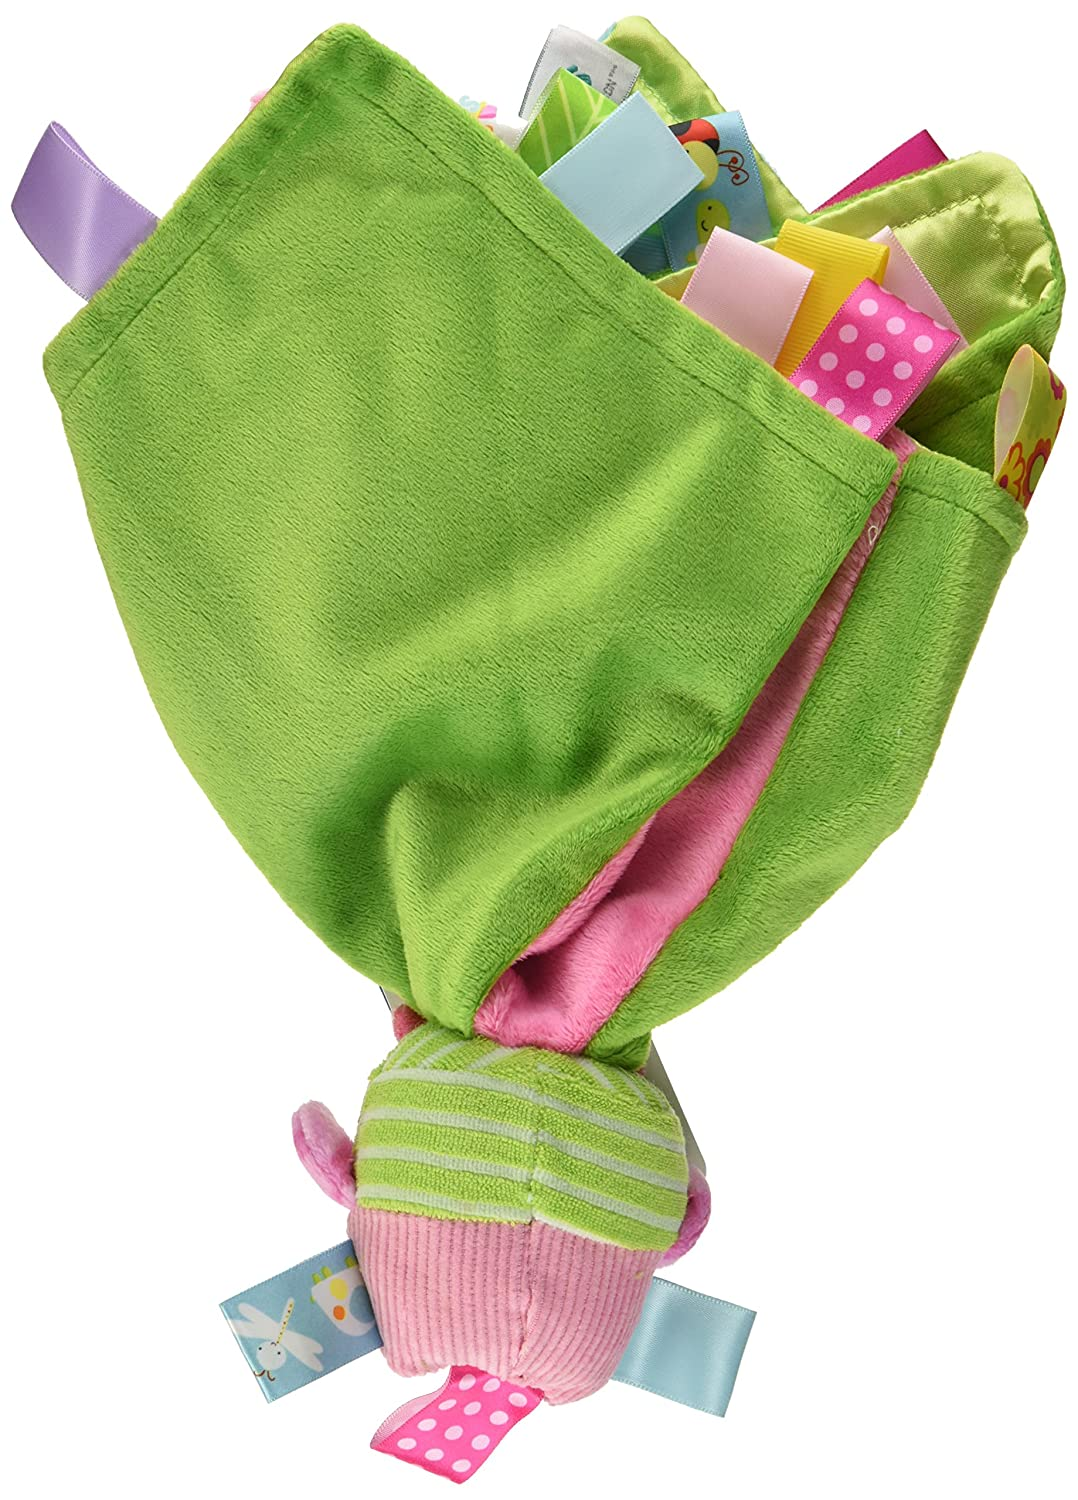 Taggies Touch /& Feel Soft Cloth Book with Crinkle Paper and Squeaker Oodles Owl Mary Meyer 40110